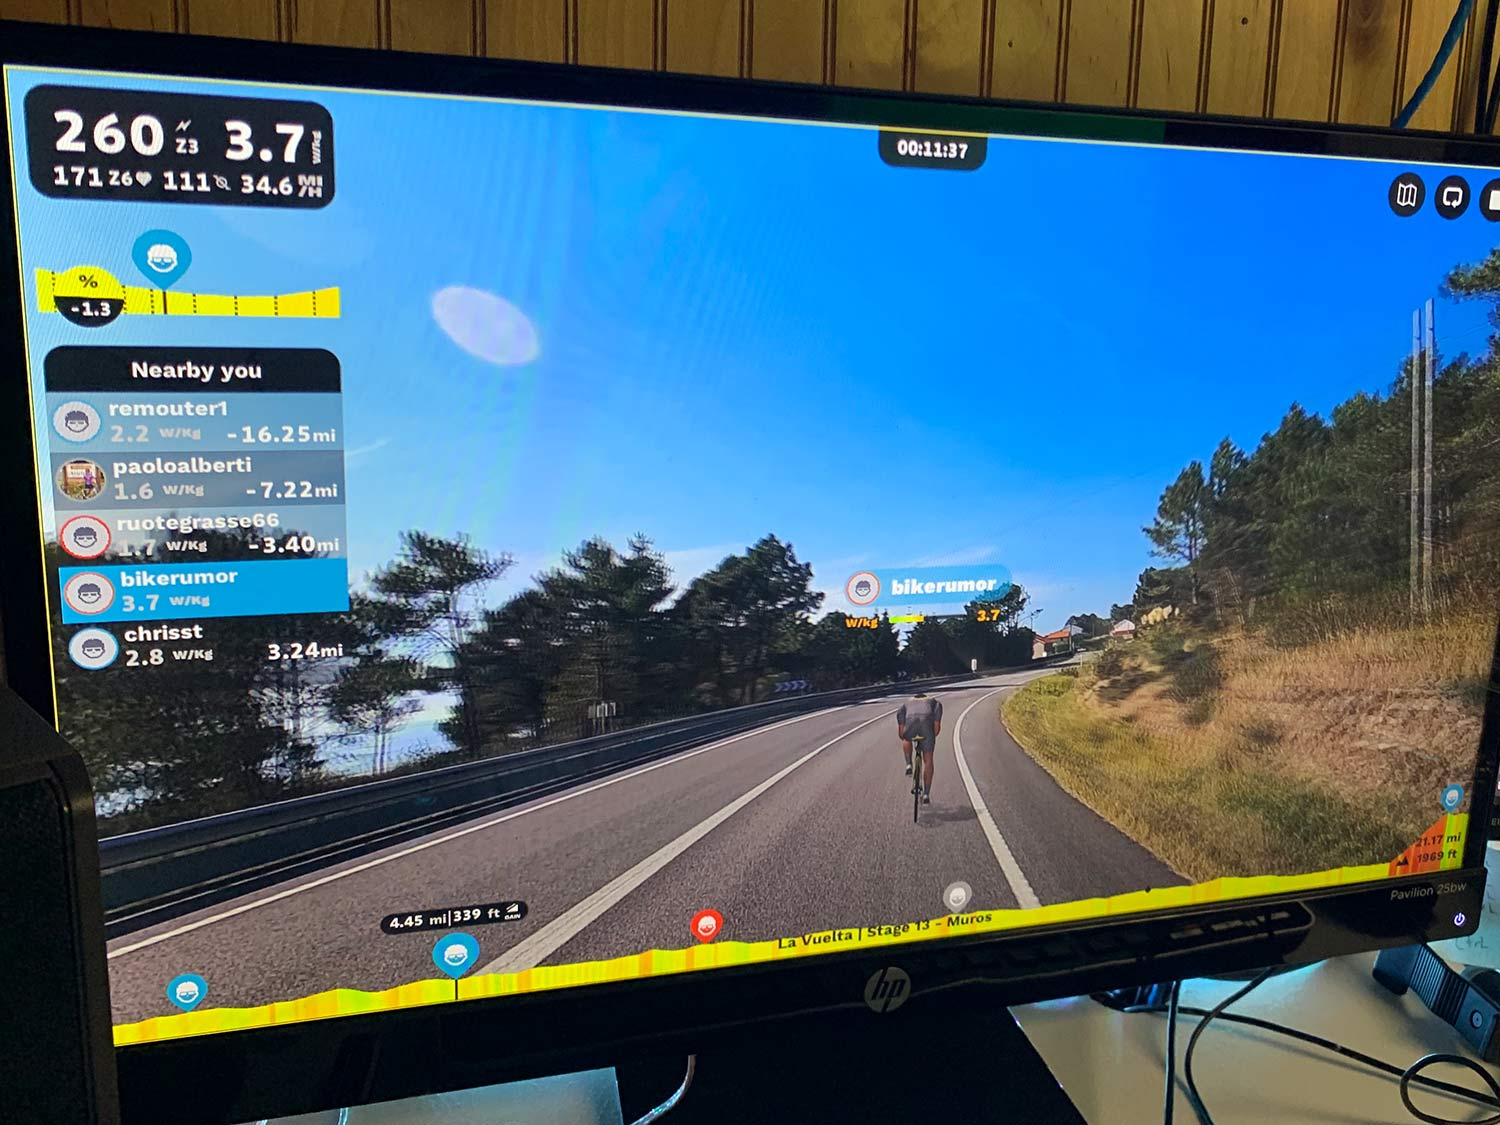 rouvy indoor virtual cycling training app screenshot showing rider stats and position